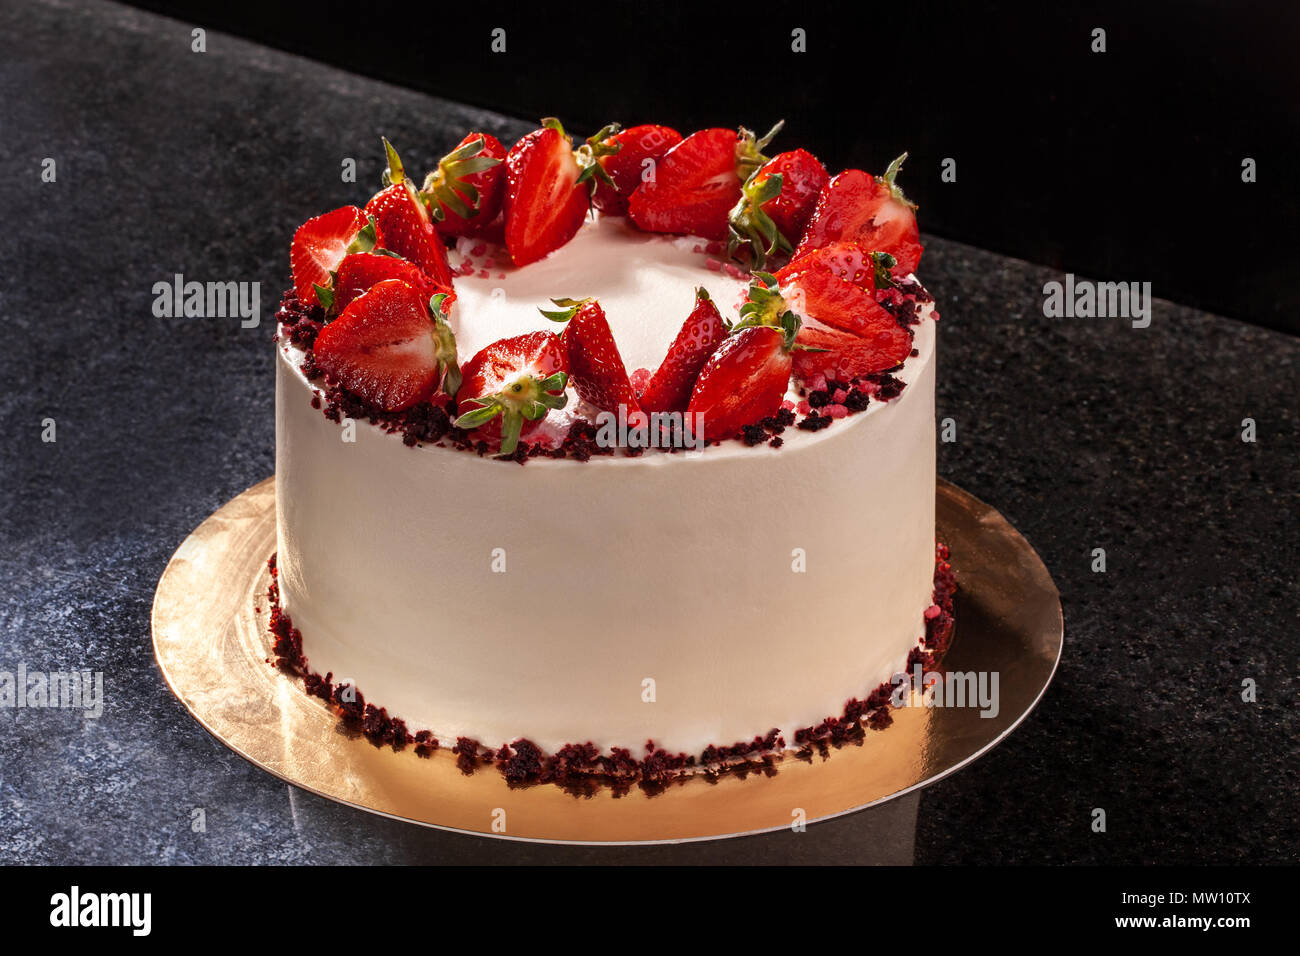 Cheesecake With Strawberries Cake Decorated With Strawberries